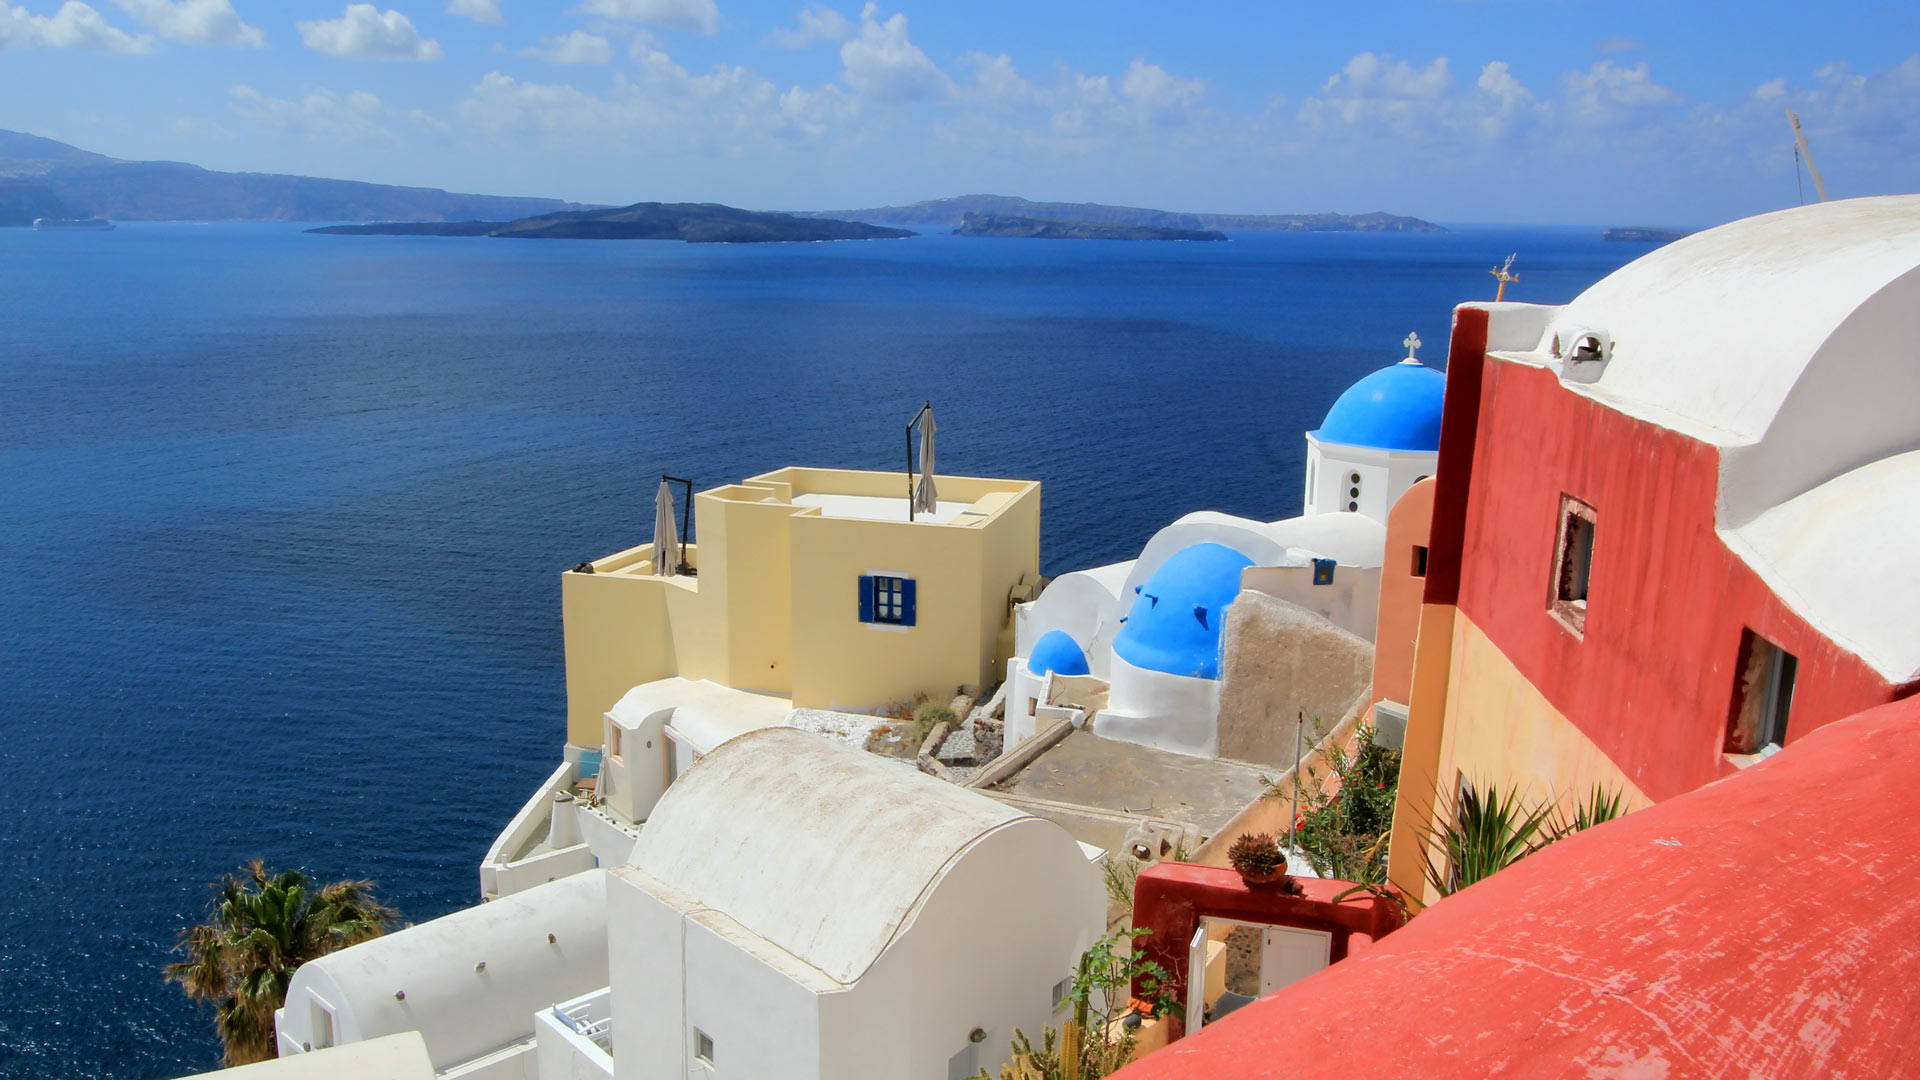 View on the caldera at Oia, Santorini, Greece, by beautiful weather